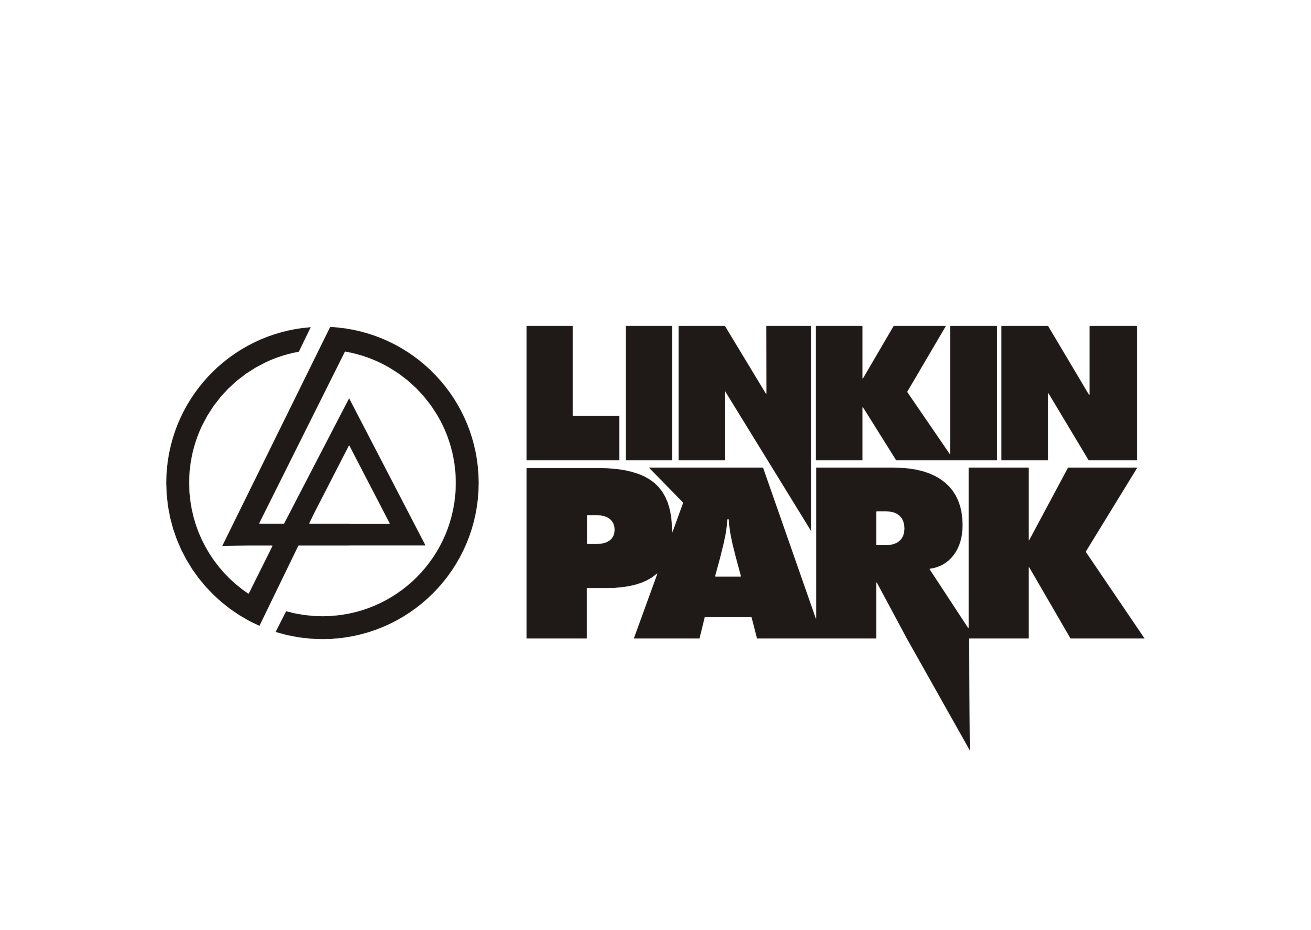 Working vector karyawan. Logo linkin park just